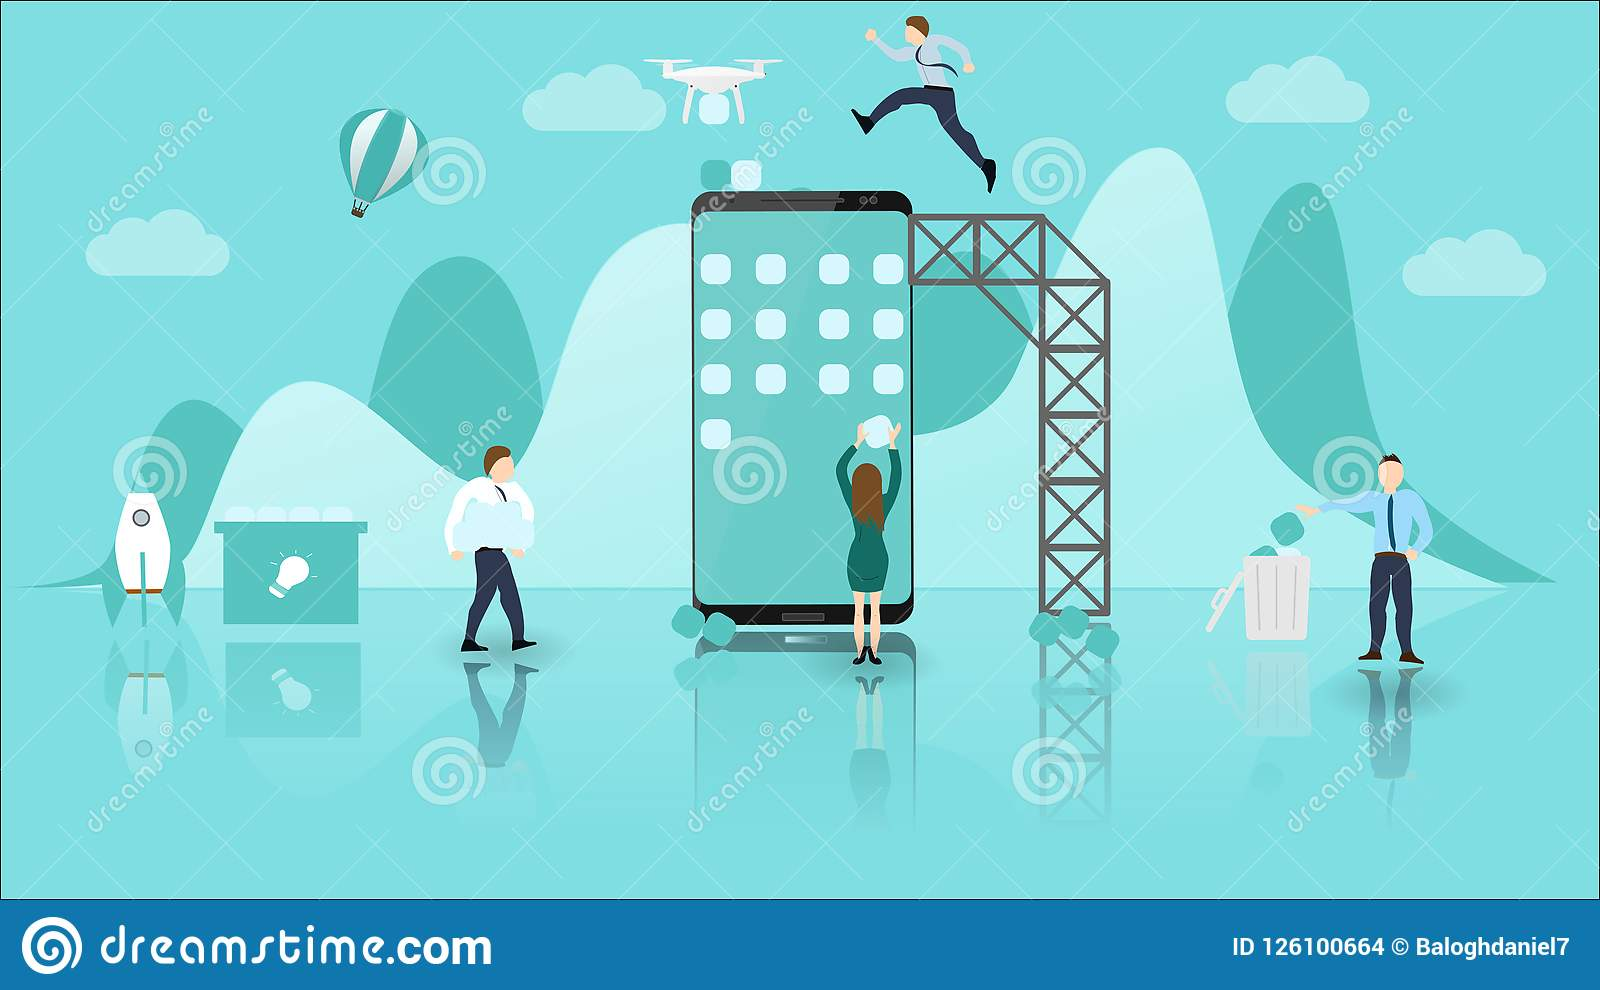 Mobile Application Development Concept with Big Phone and Little People. Experienced Teamwork and Collaboration. Usable